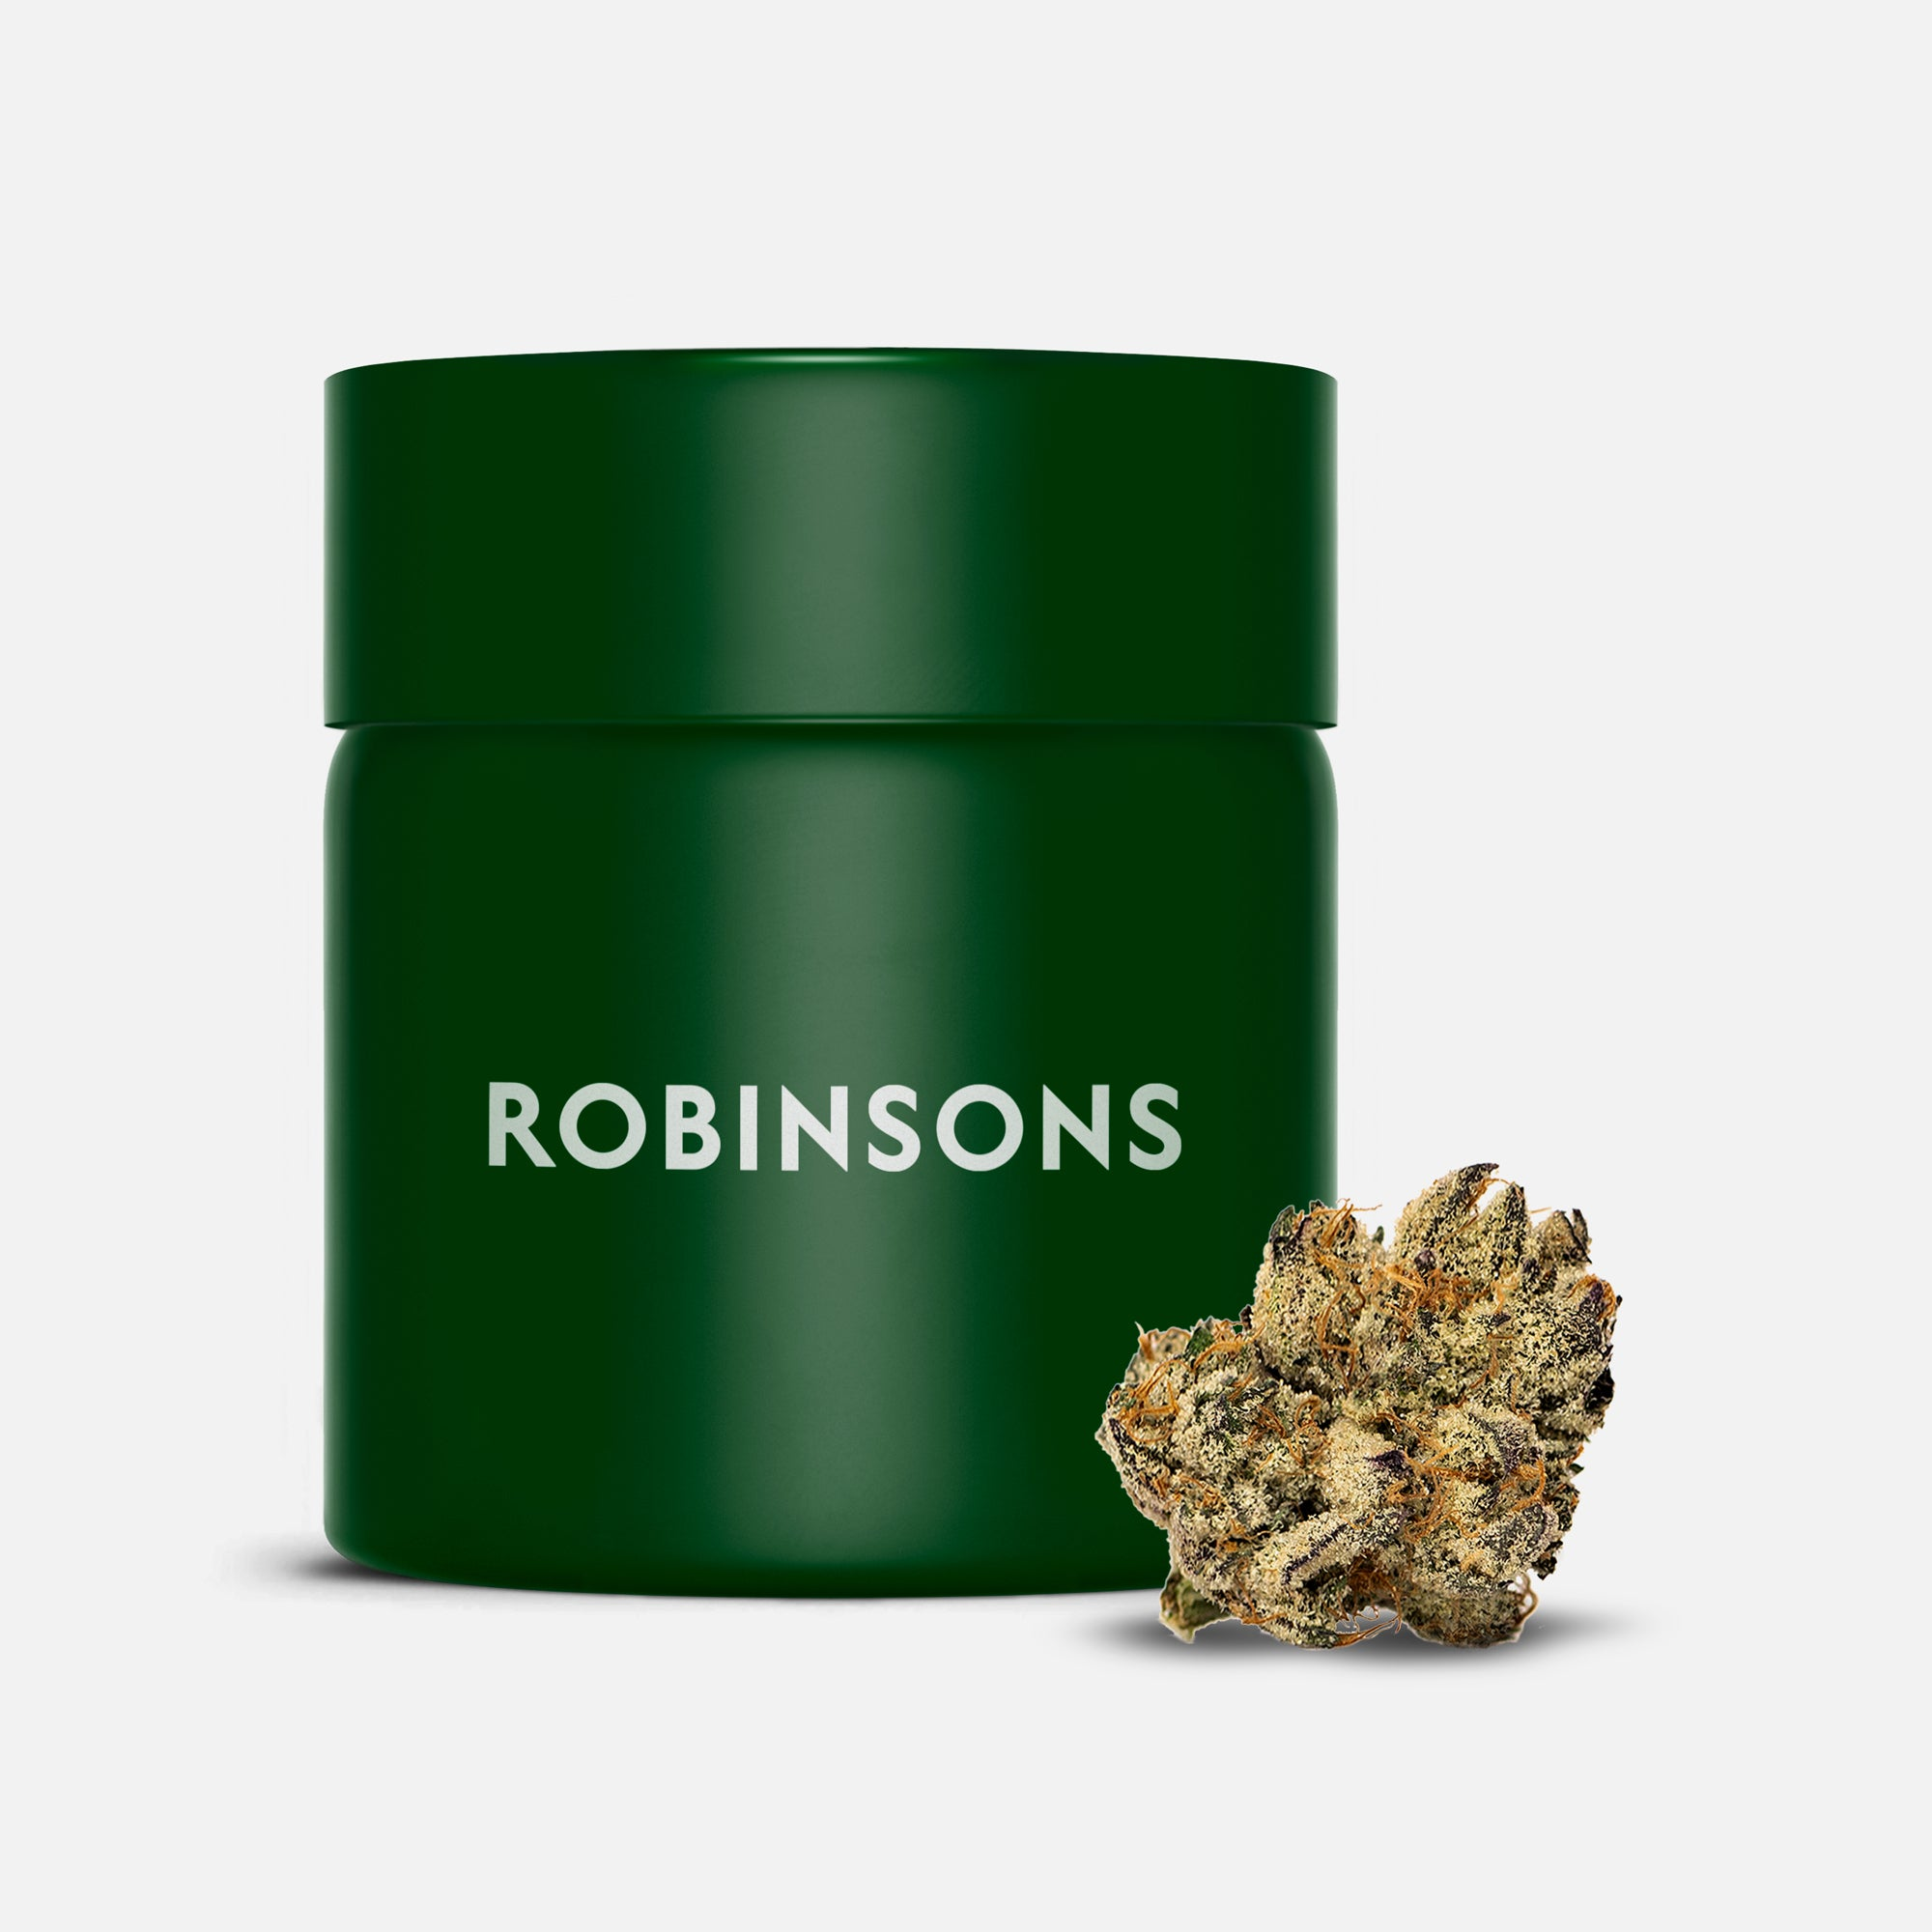 Robinsons branded green jar with cannabis bud